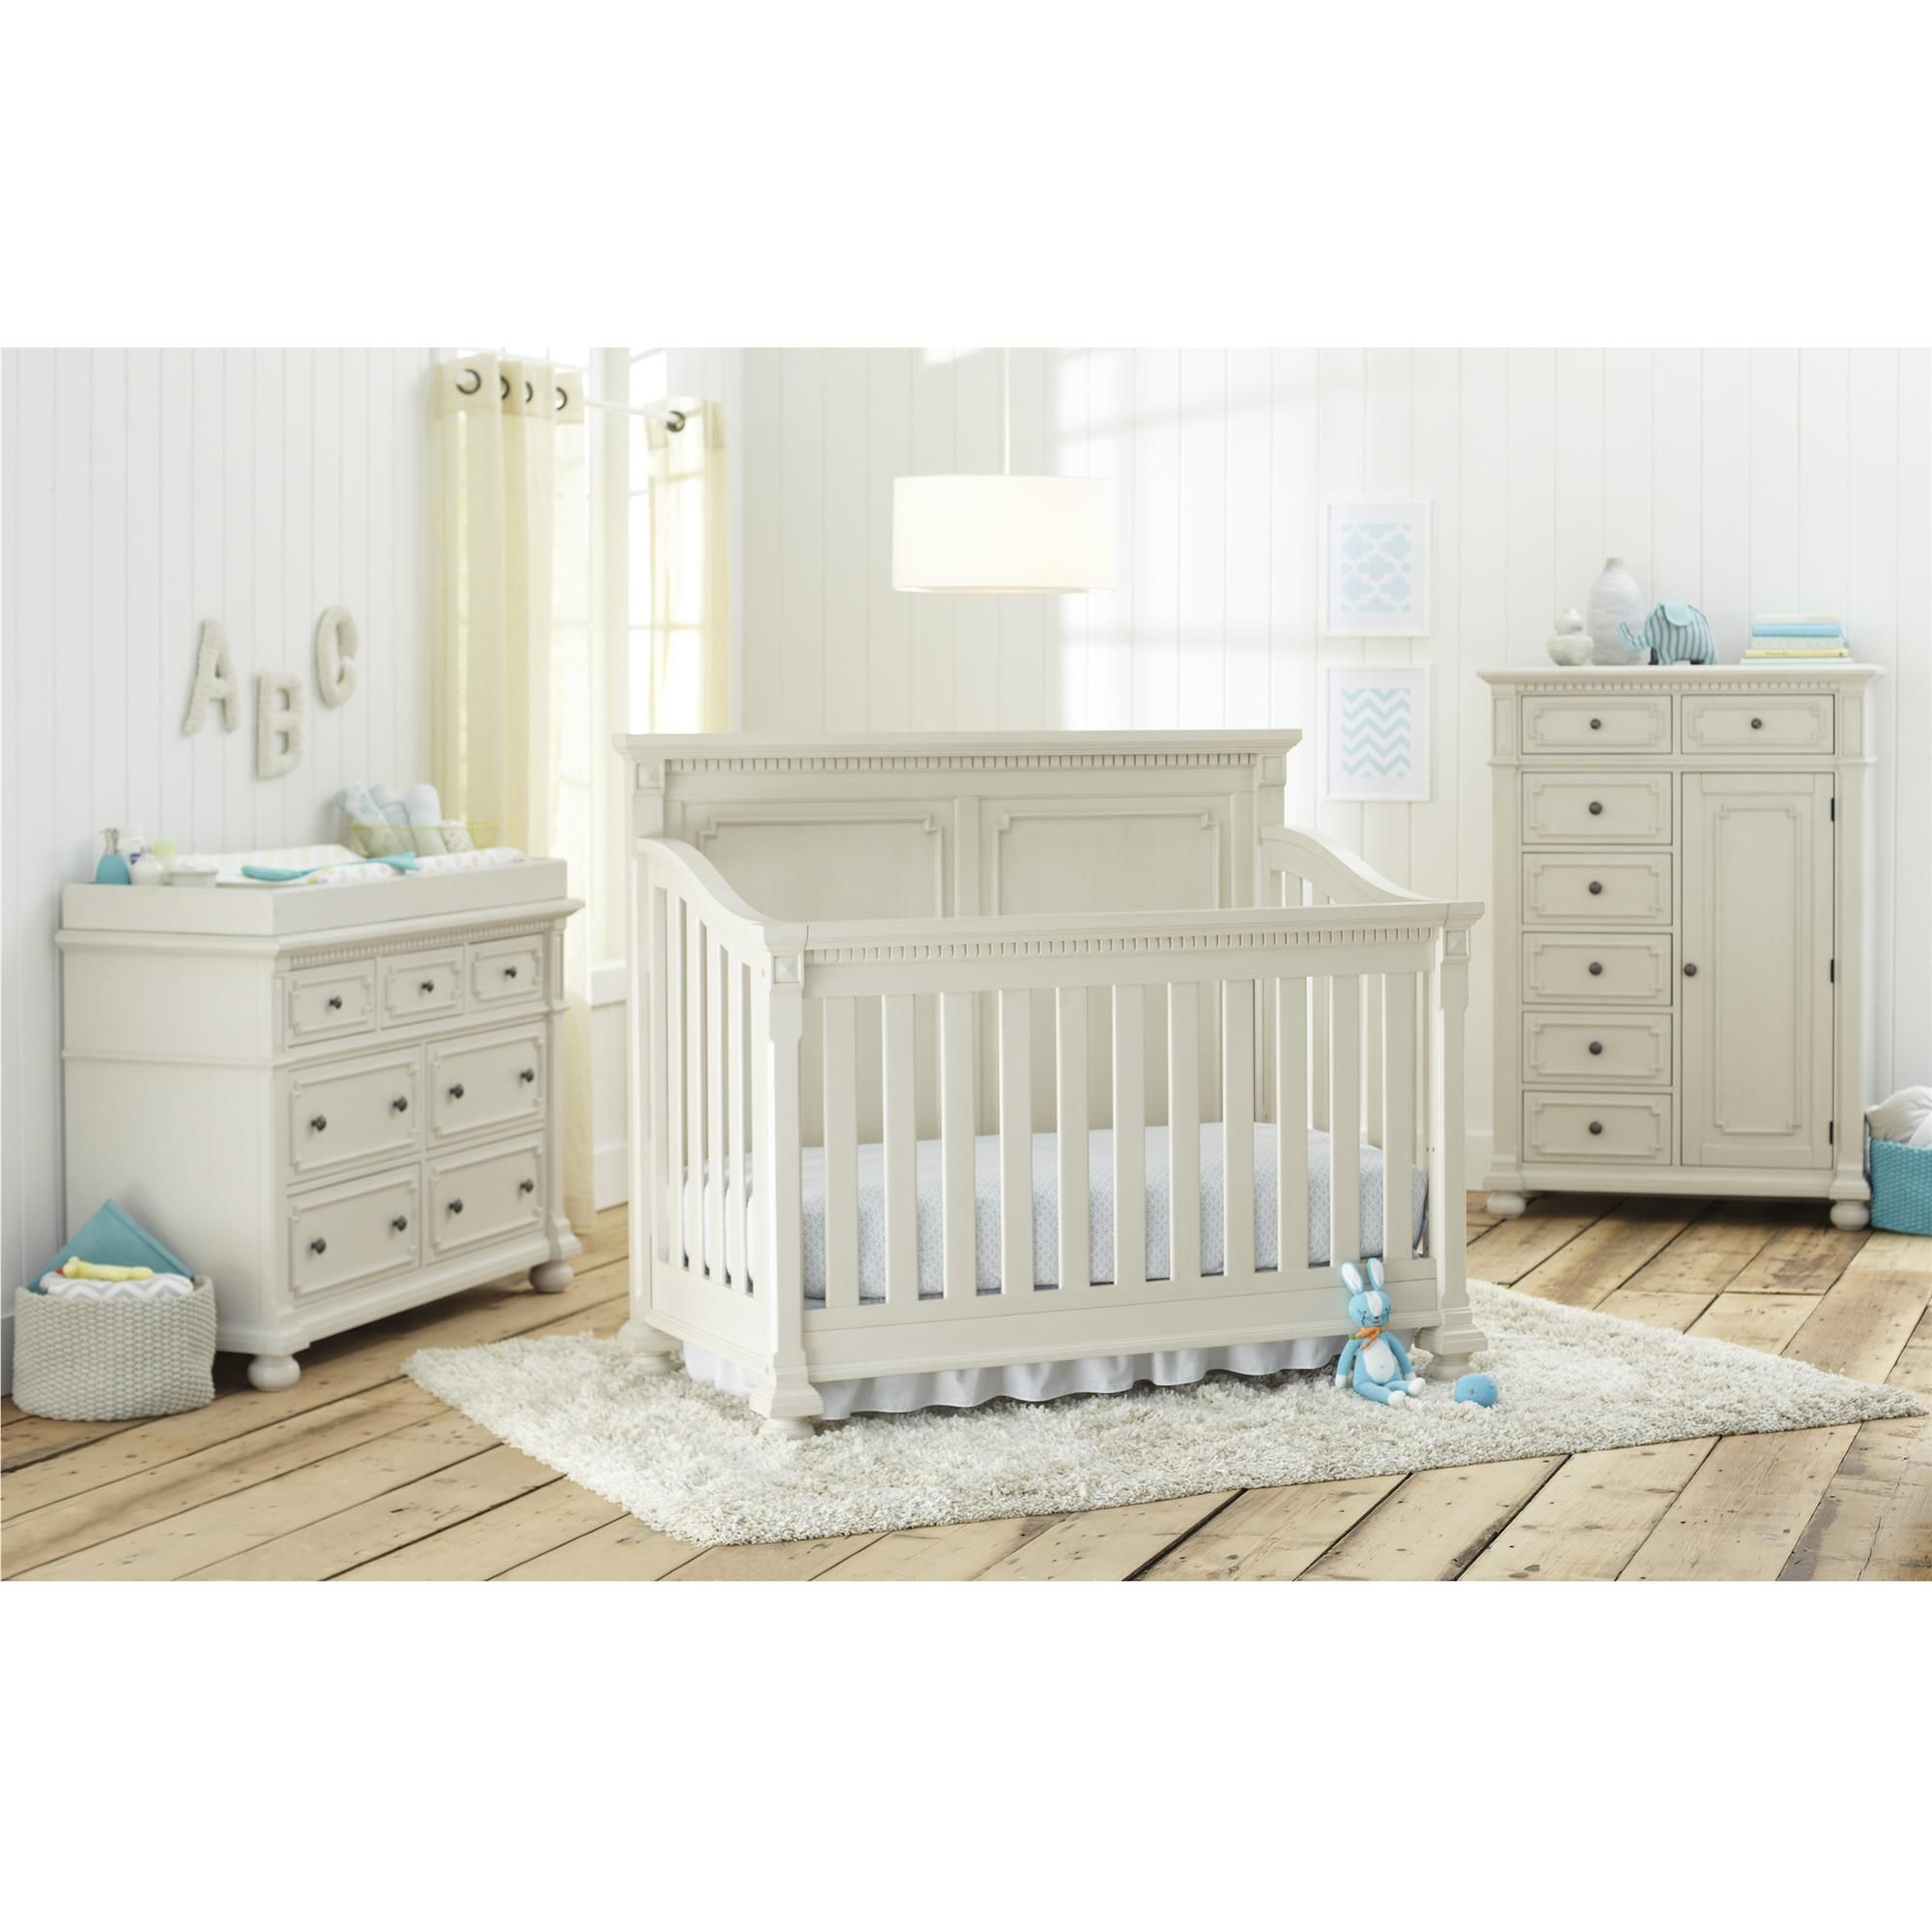 children detached crib products drawers changer cnc with bianca n white delta drawer under convertible luna